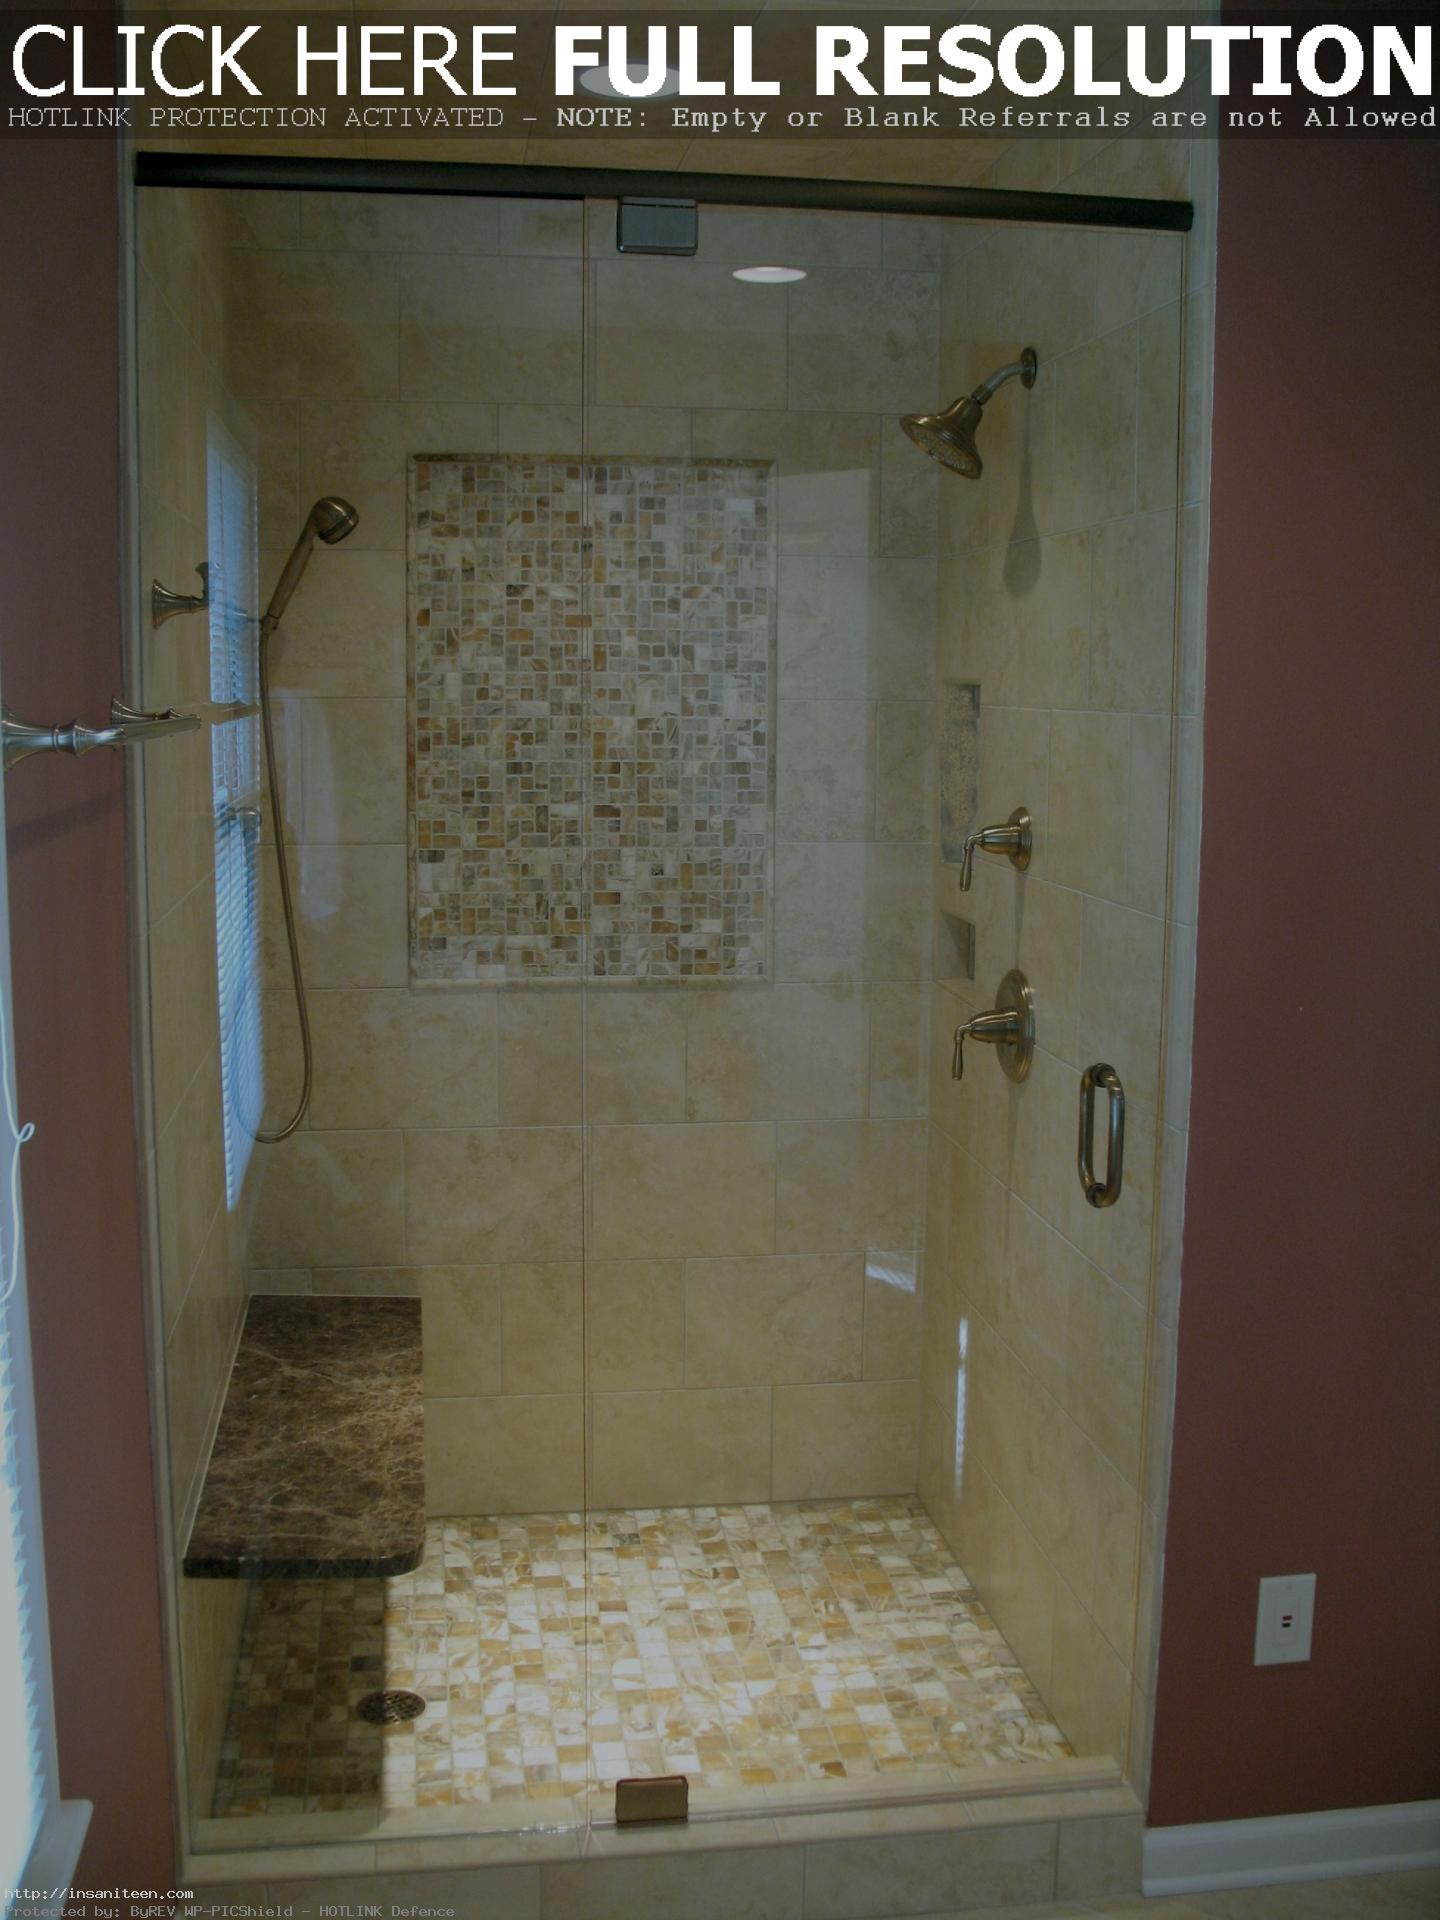 Extraordinary-Baffle-Recessed-Lighting-and-Shower-Designs-with-Glass-Tile-also-Wall-Mounted-Marble-Shower-Bench-in-Apartment-Bathroom-Design